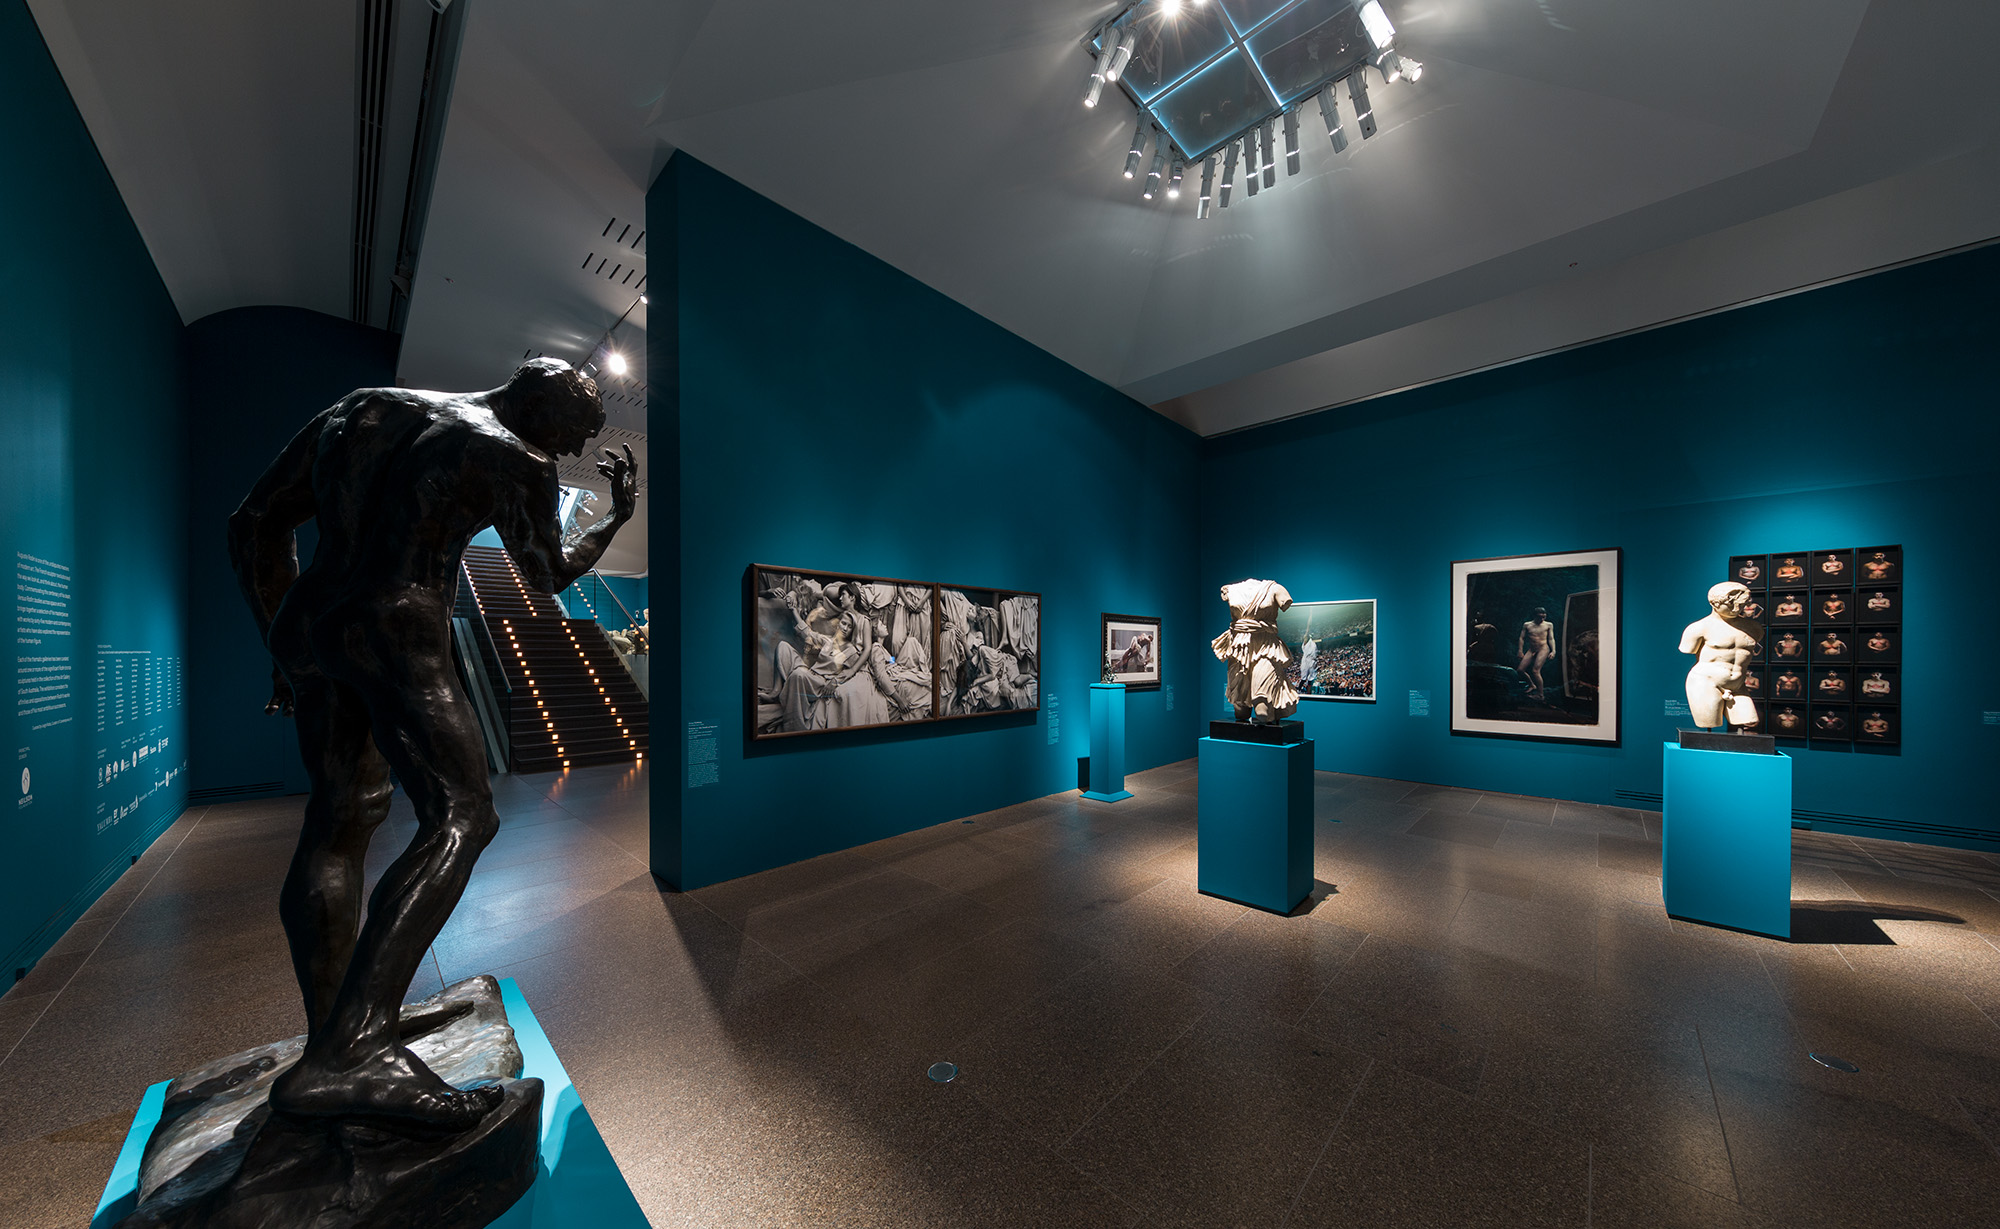 Installation view  Versus Rodin: bodies across space and time , Art Gallery of South Australia, 2017, featuring  The classical body .